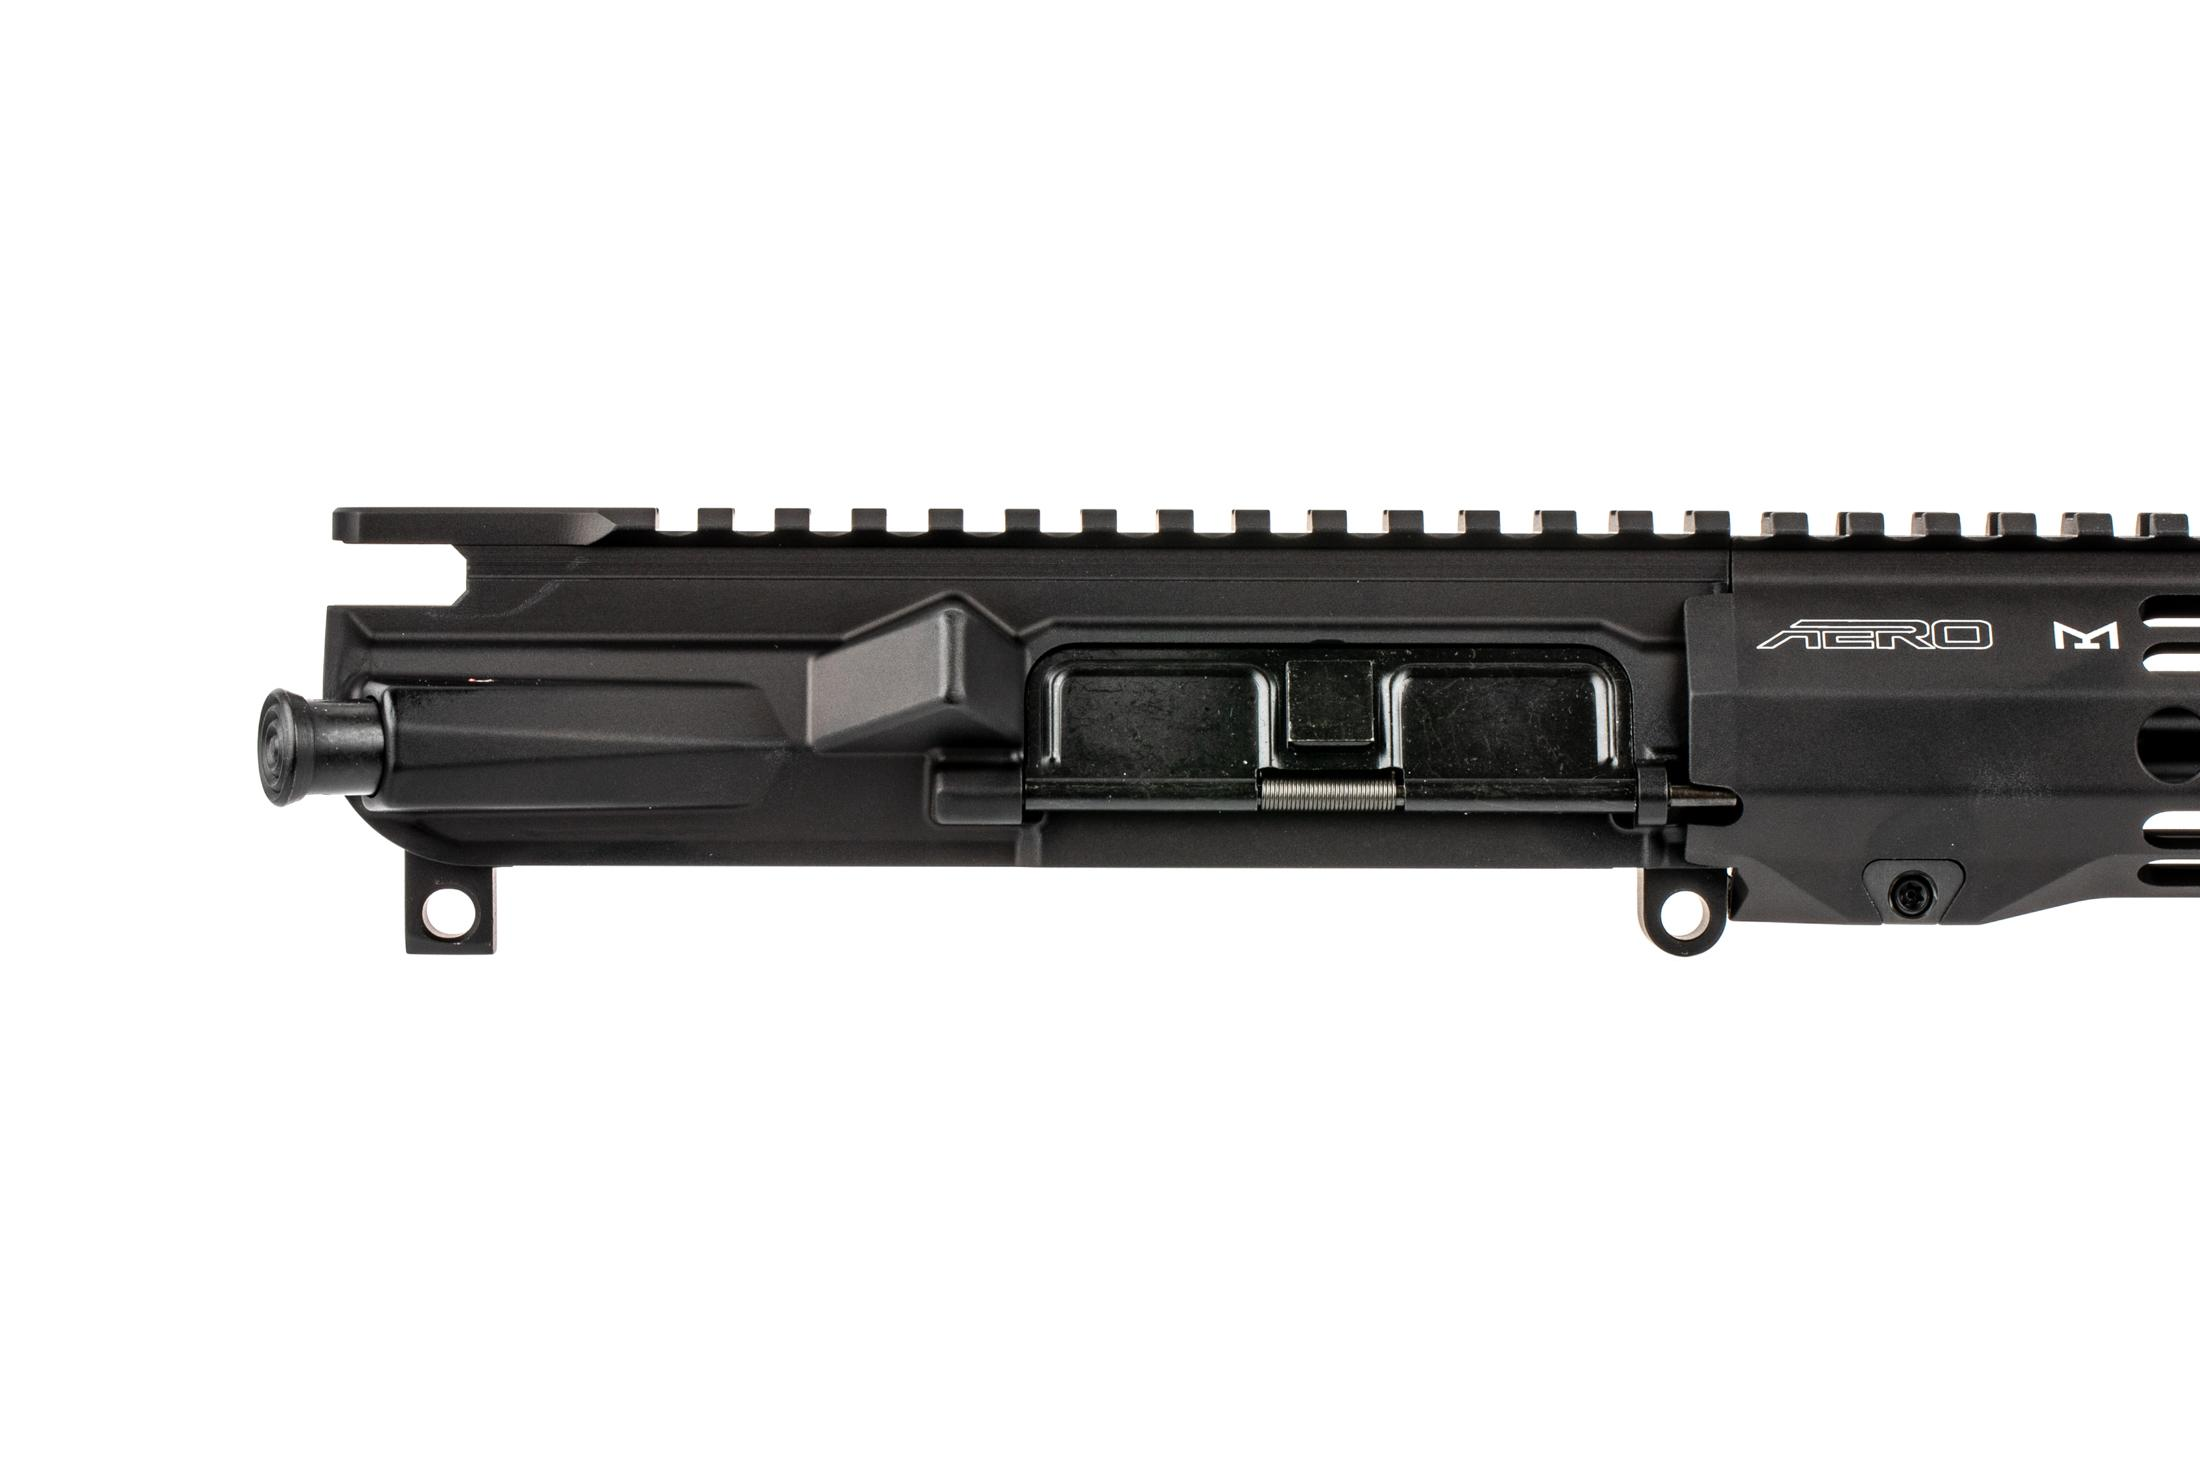 The Aero Precision M4E1 AR-15 barreled upper receiver group comes assembled with forward assist and dust cover